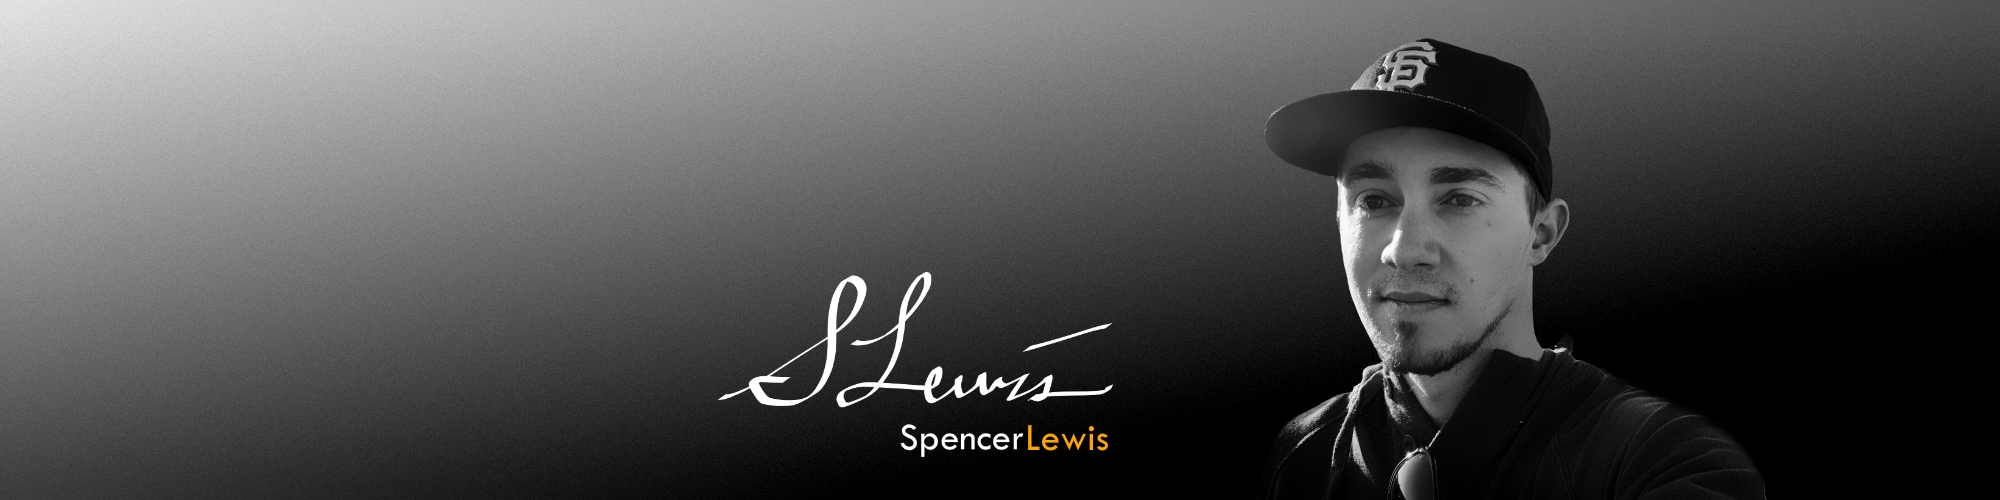 Spencer Lewis